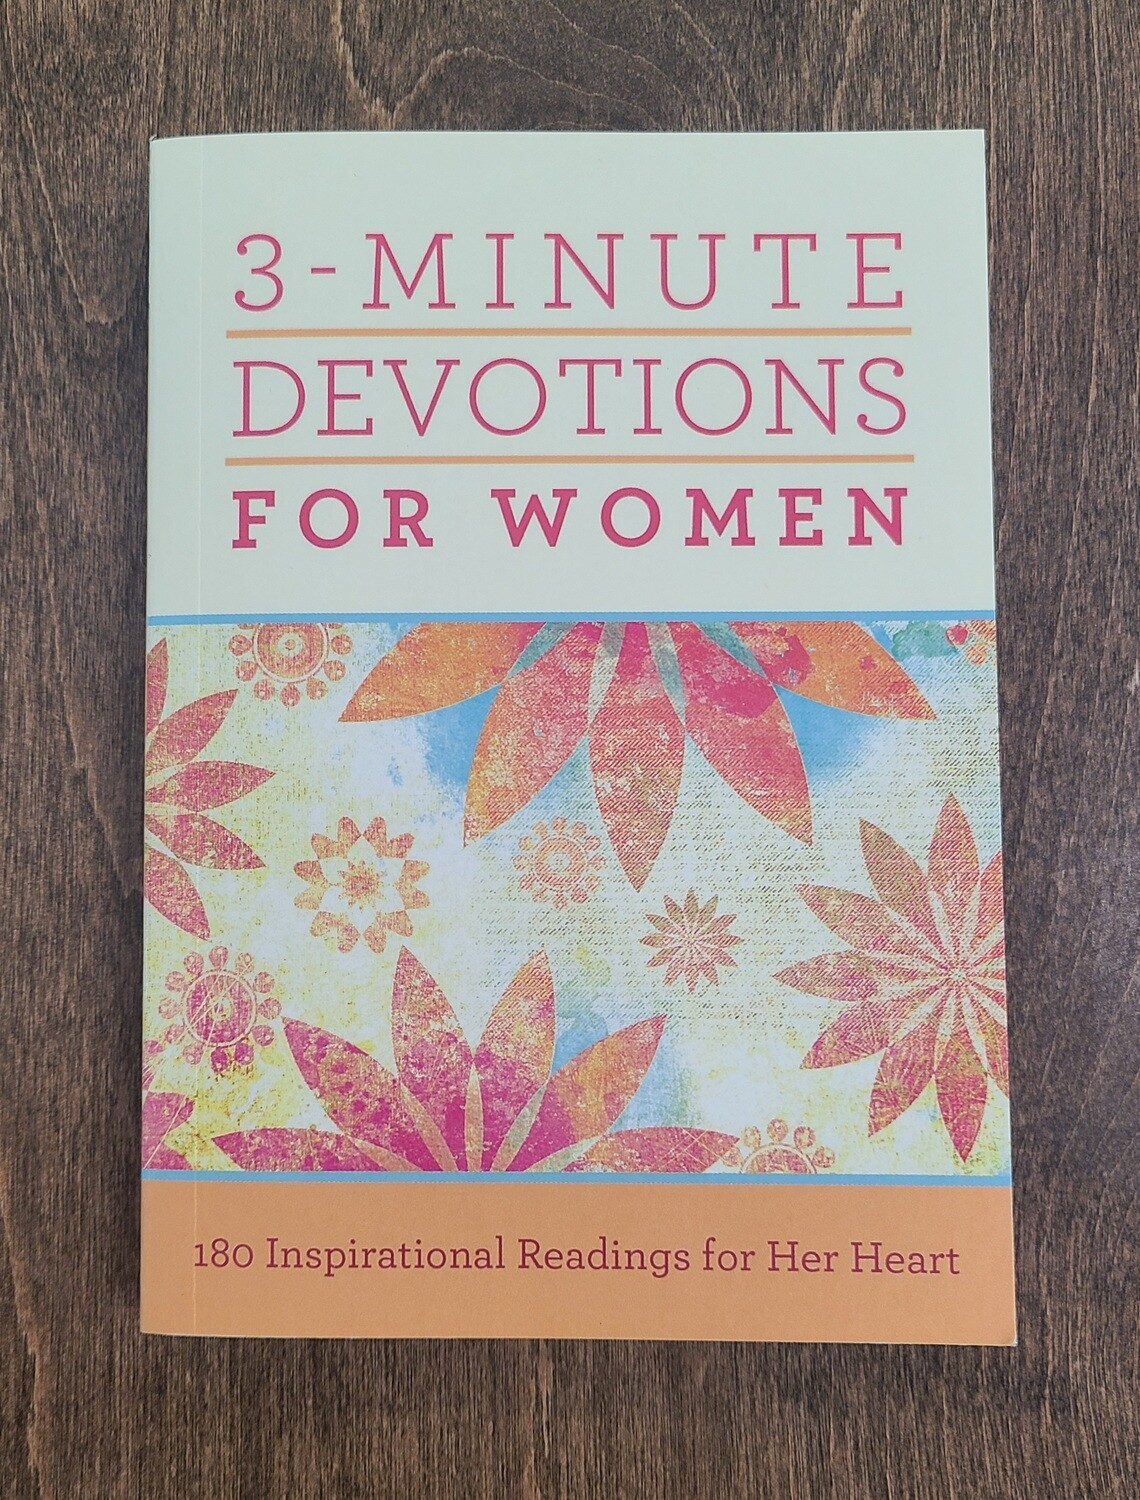 3-Minute Devotions for Women by Barbour Publishing Inc